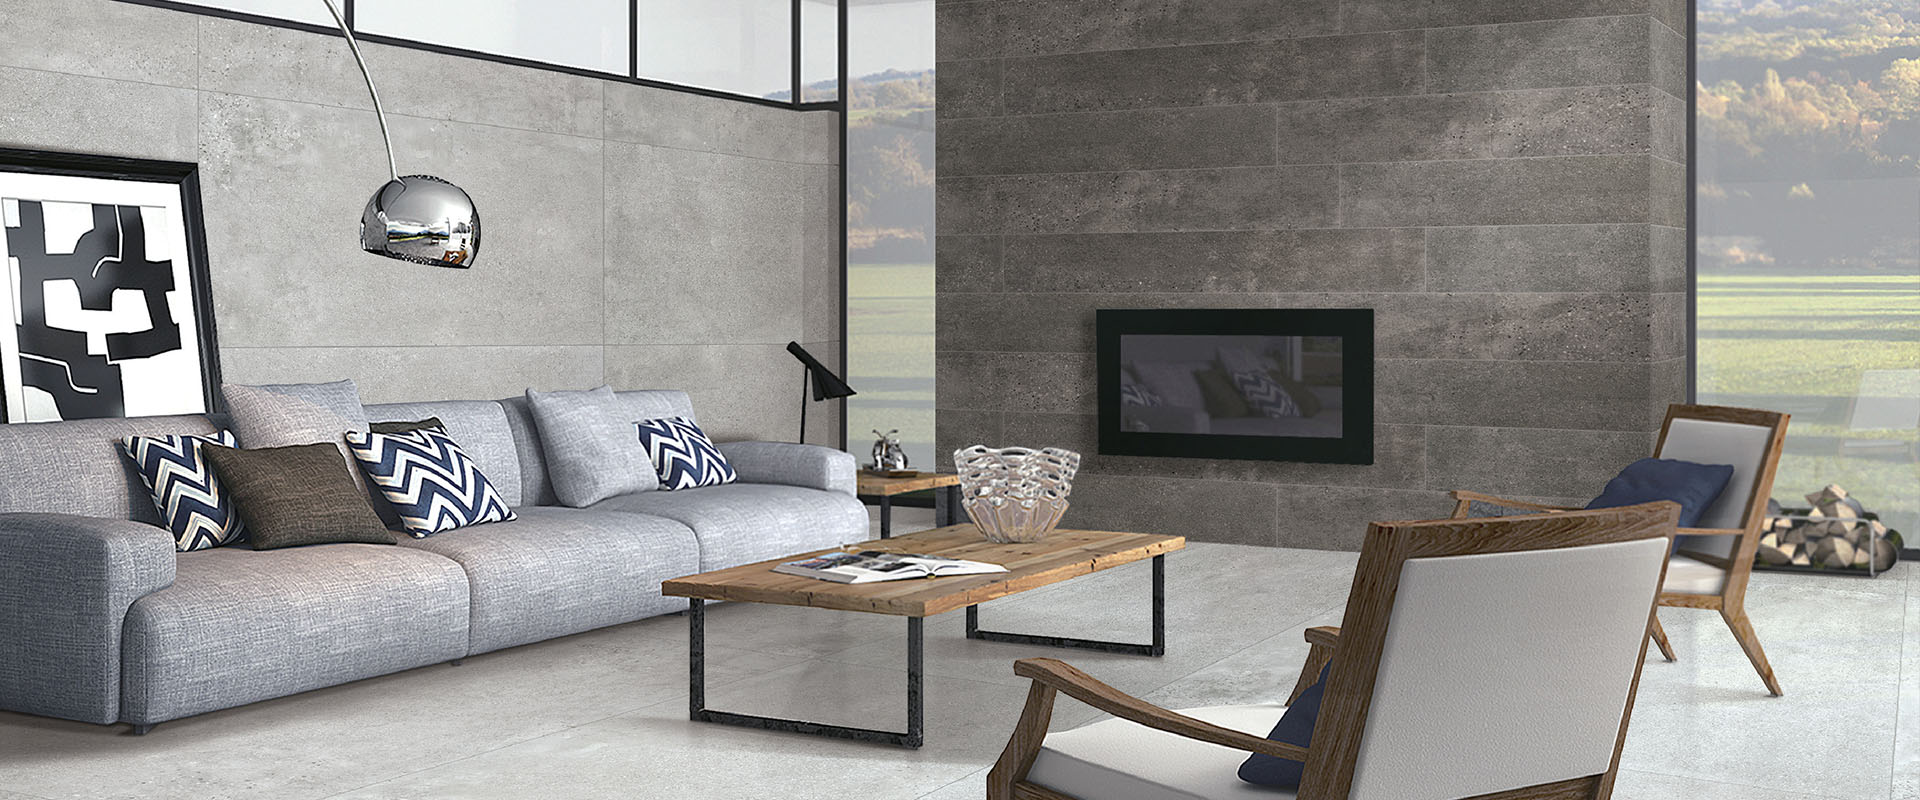 lakestone collection banner 3